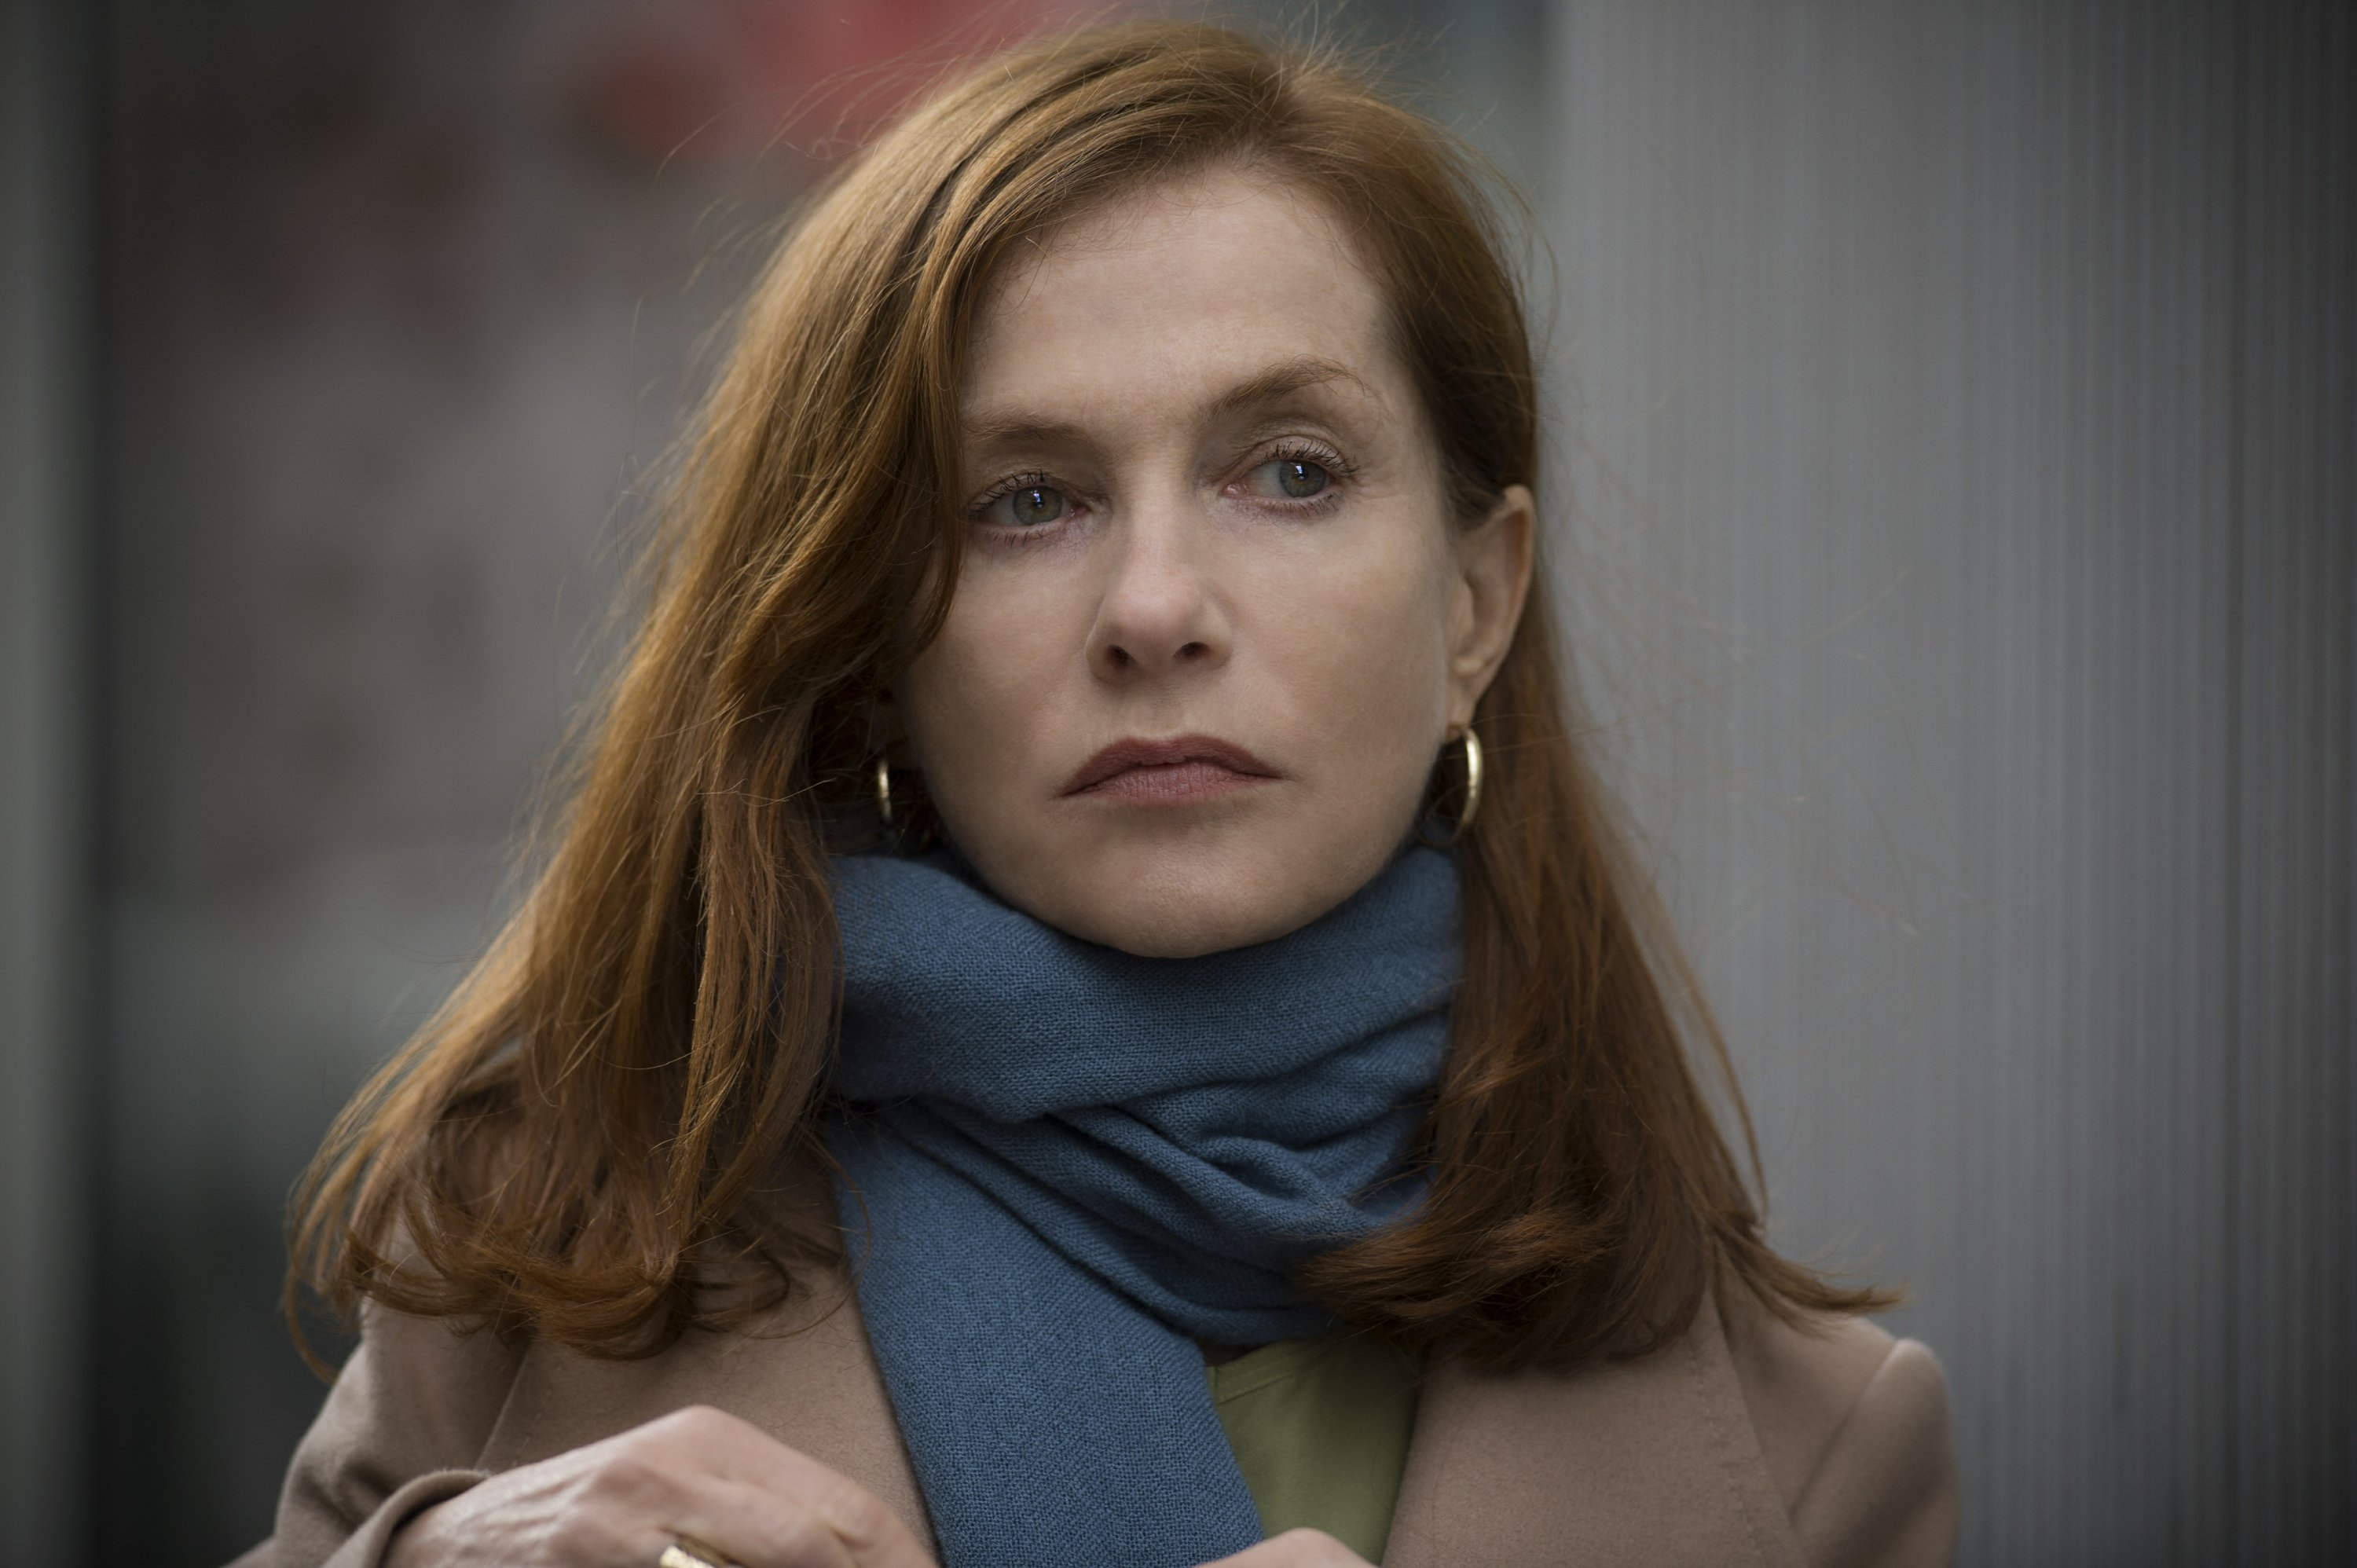 The Complete List of Isabelle Huppert Movies